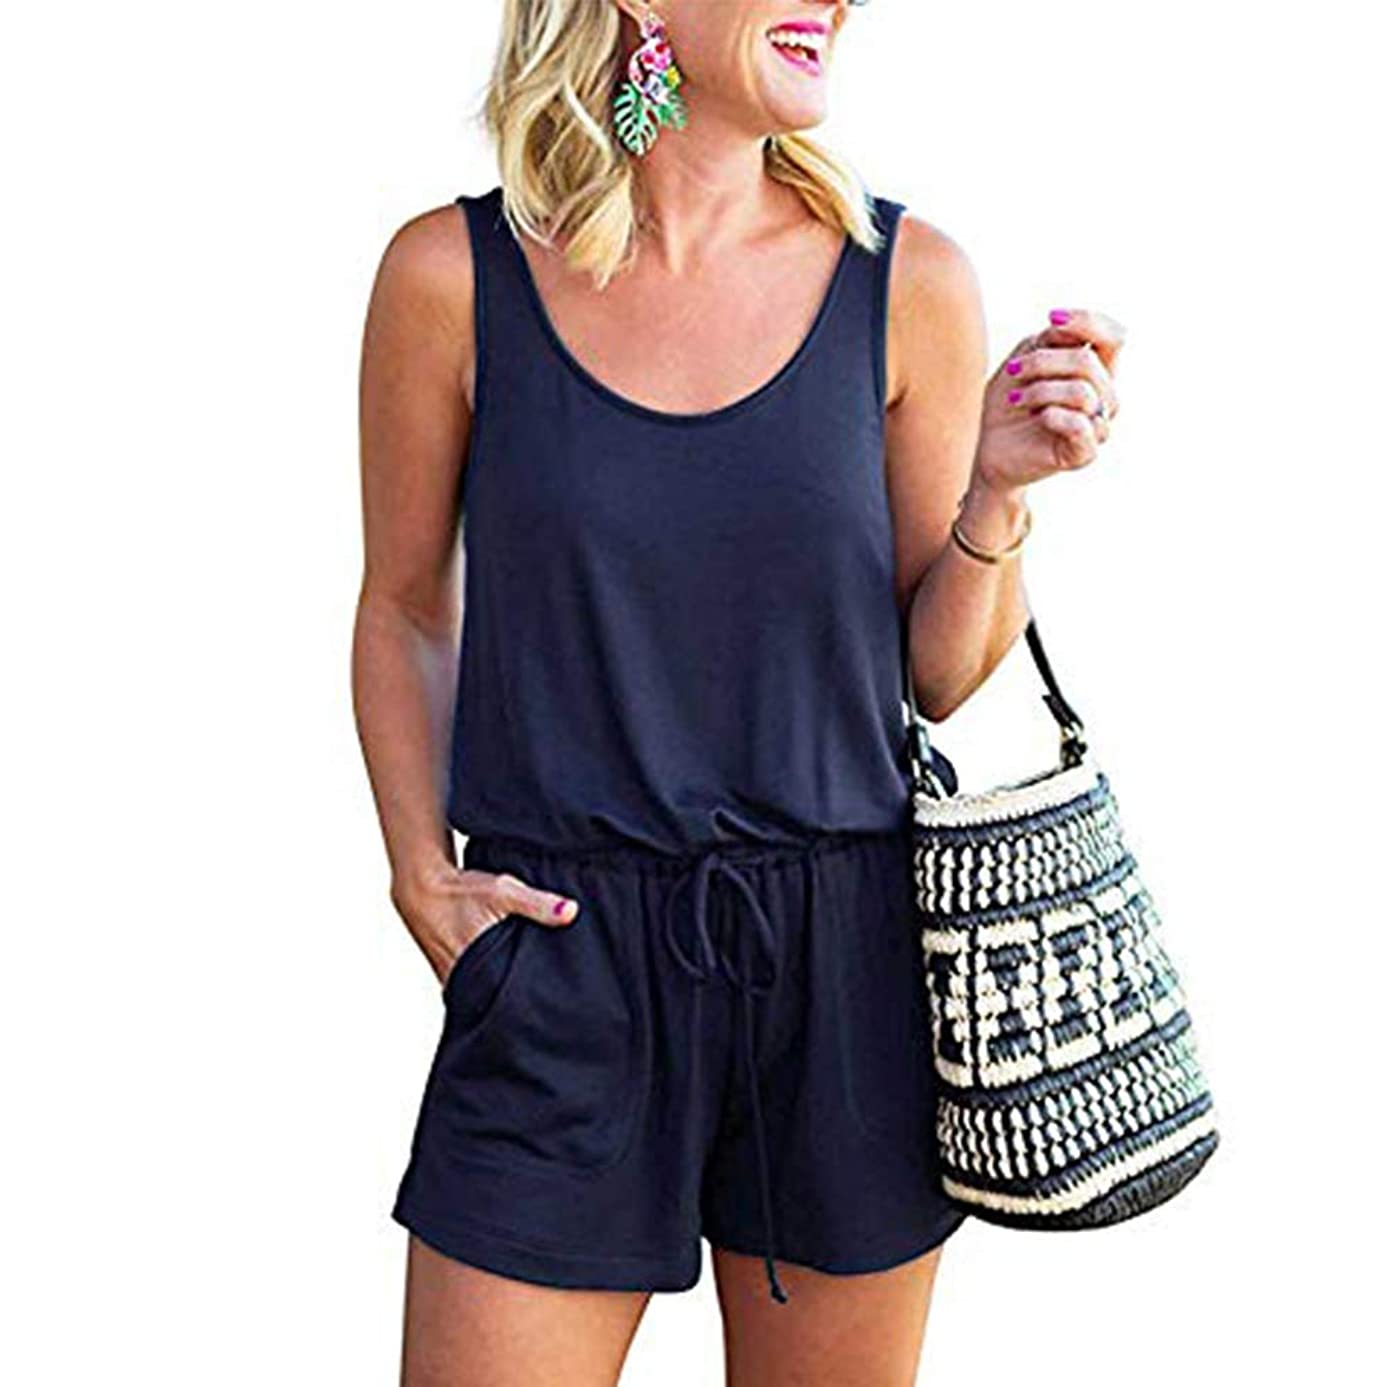 Artfish Women Summer Sleeveless Jumpsuit Solid Casual Shorts Romper with Pockets